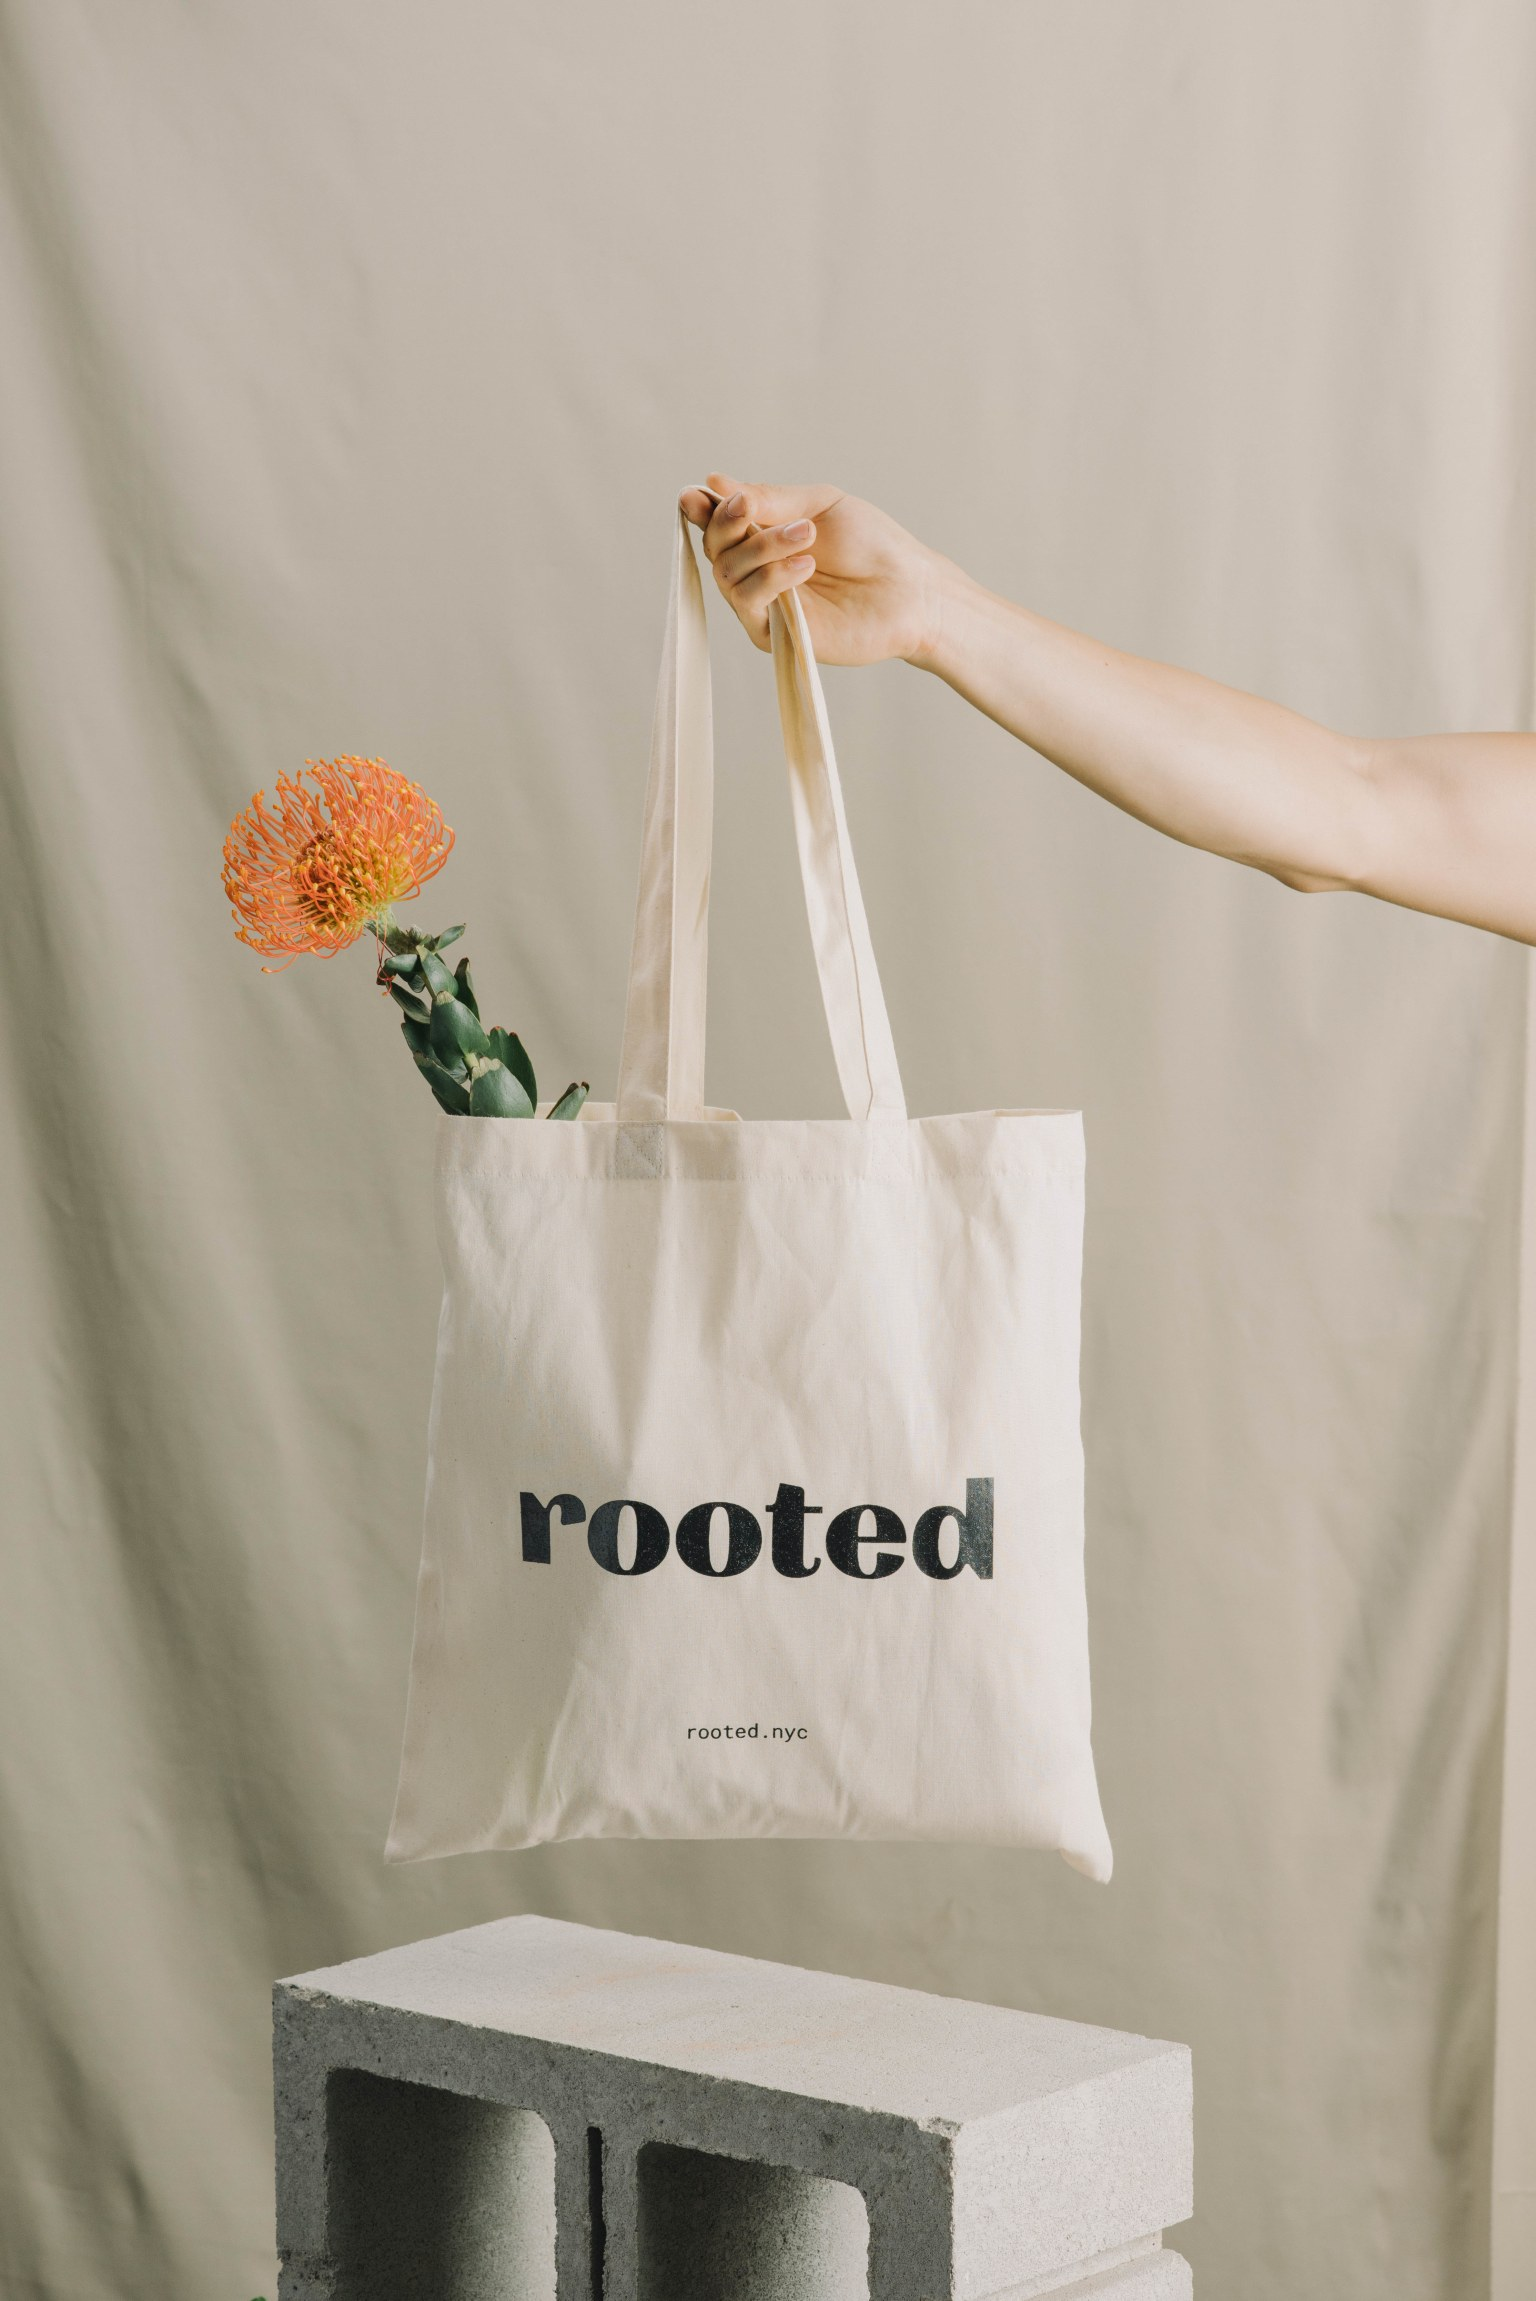 Rooted NYC